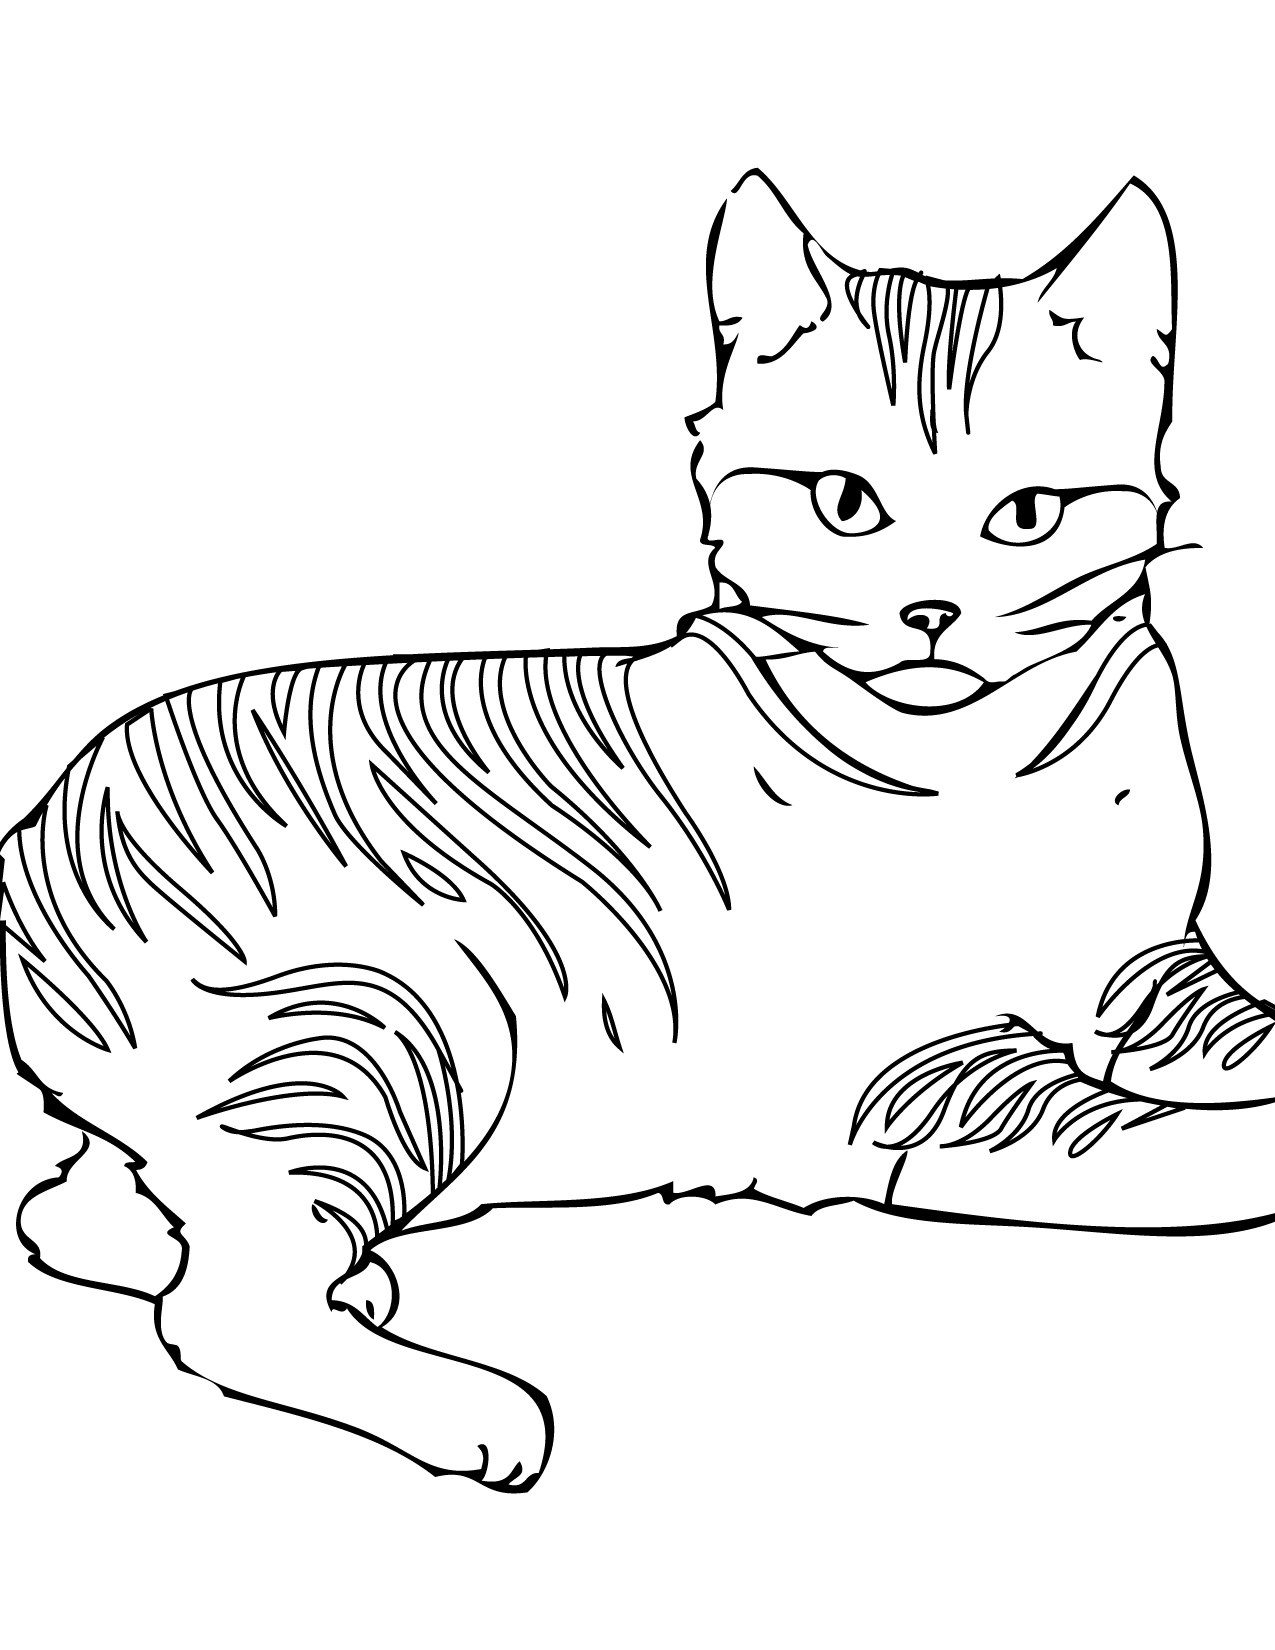 1275x1650 Security Picture Of Cats To Color Cat Coloring Page Realistic